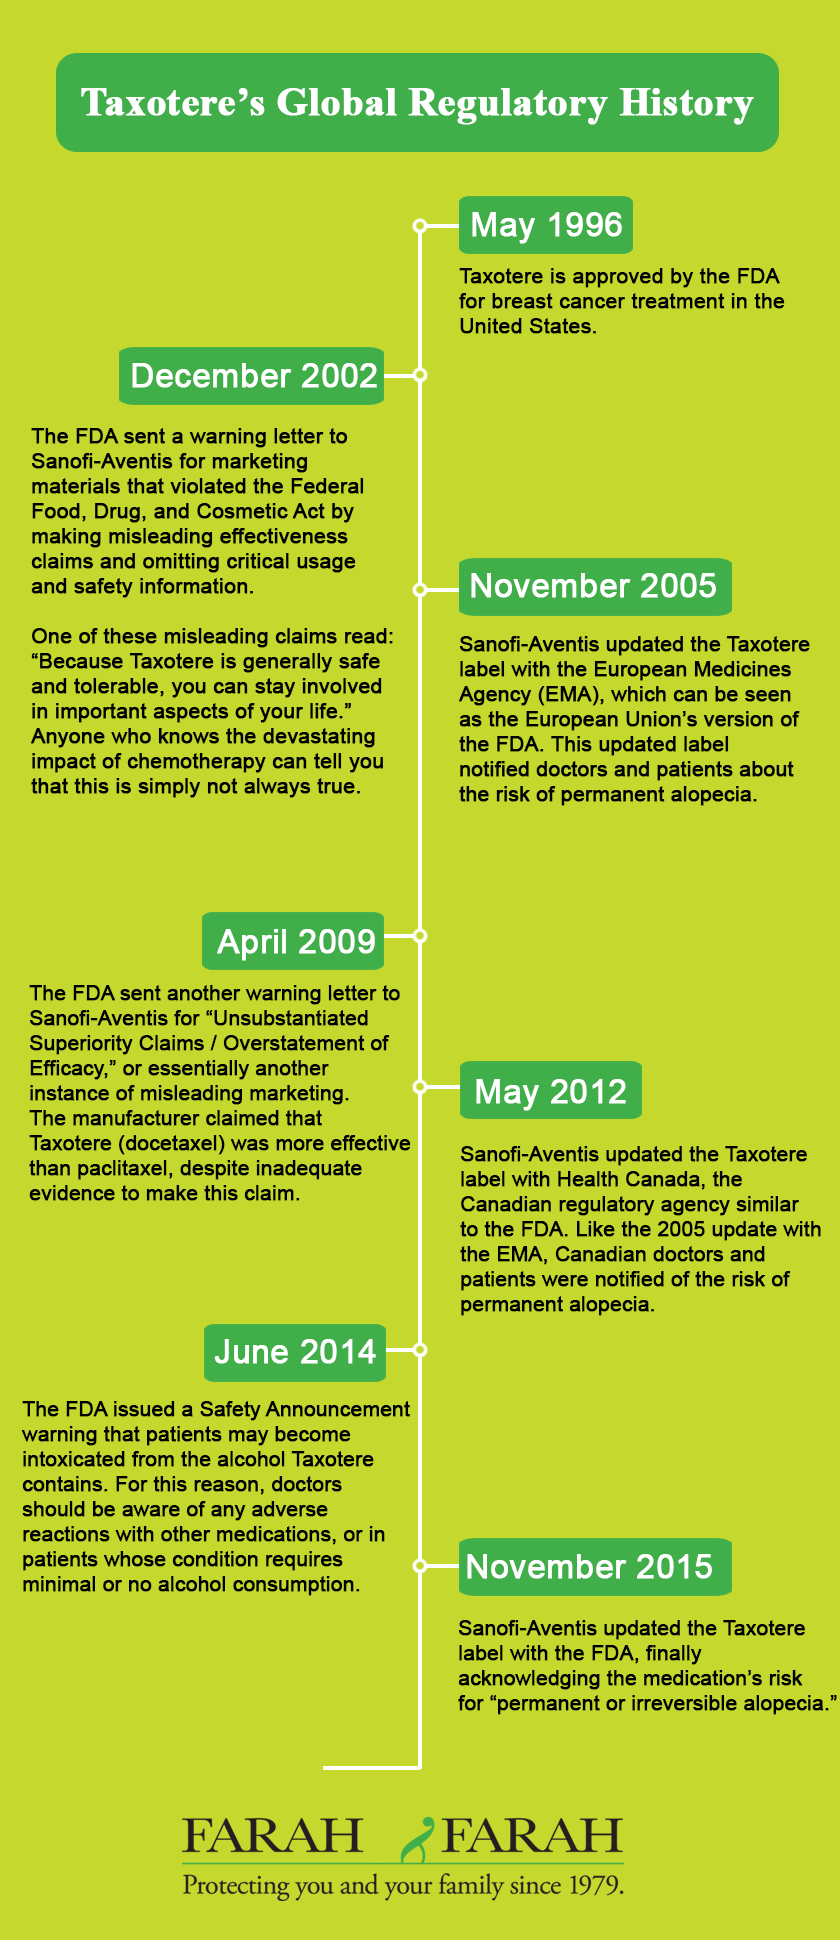 Taxotere's Global Regulatory History